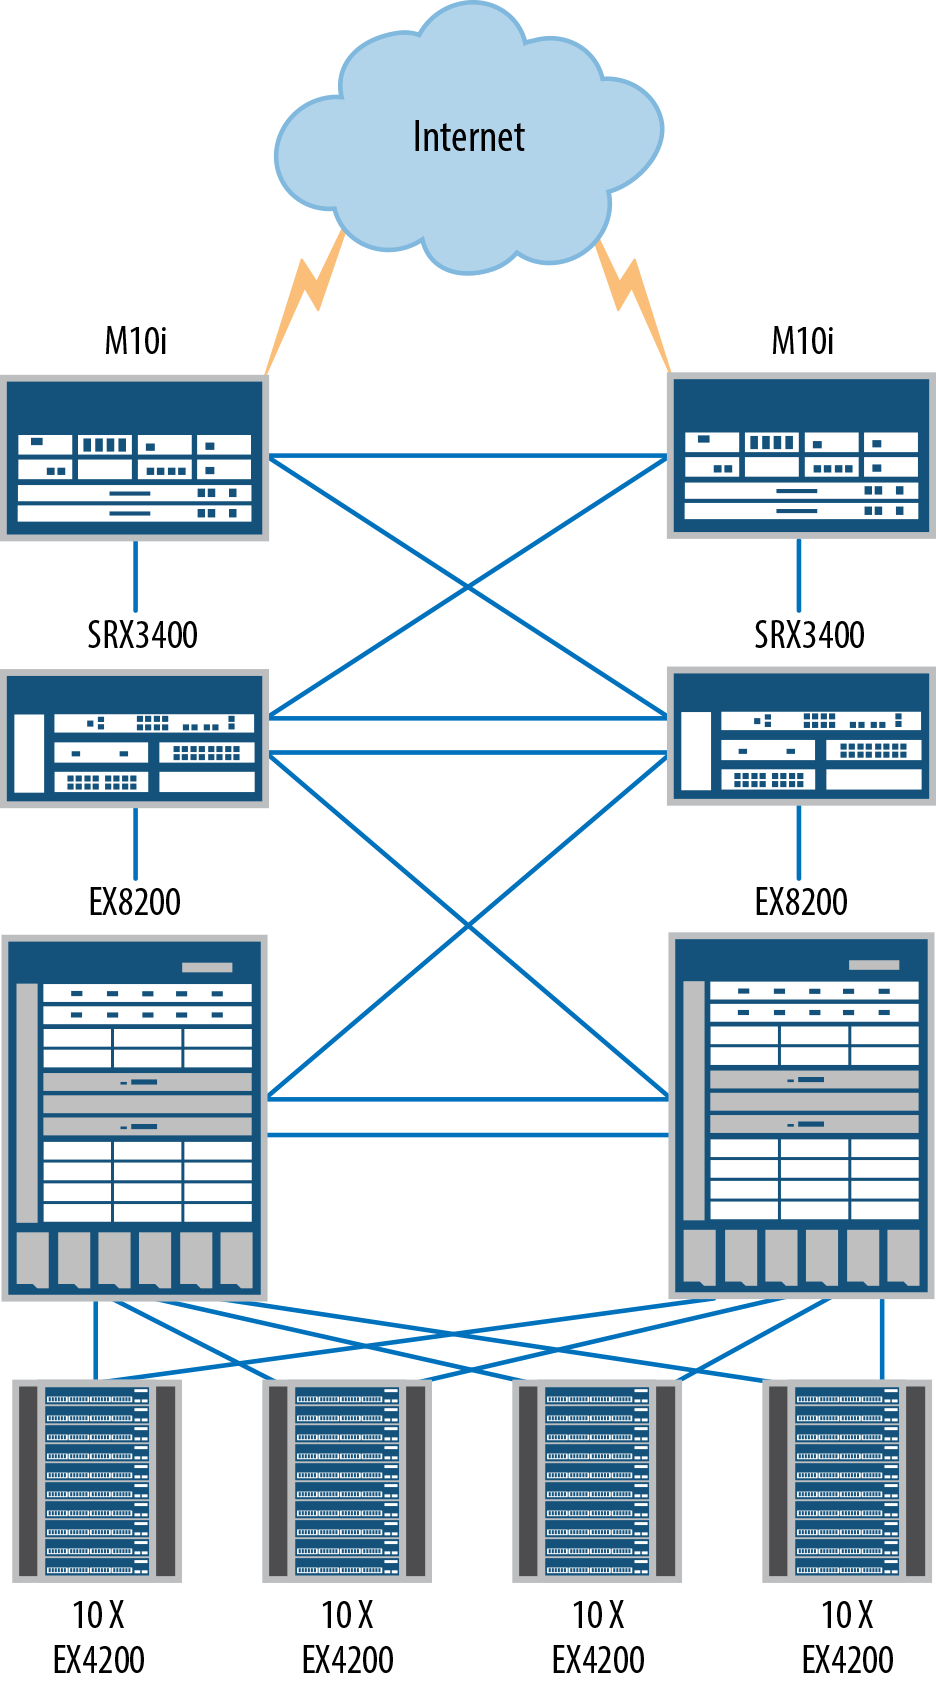 The data center edge with the SRX3000 line